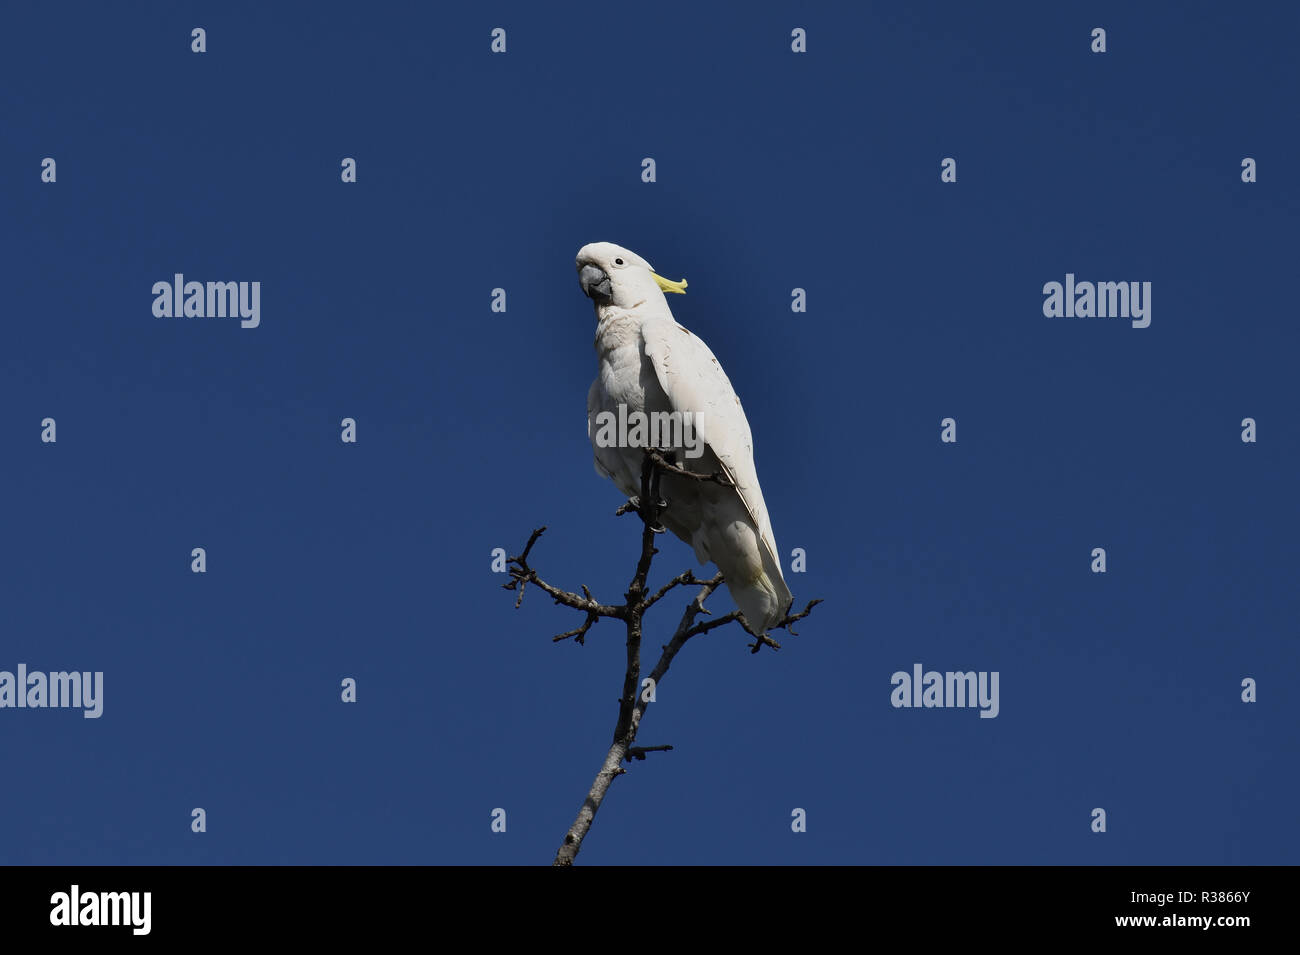 An Australian, Queensland Sulphur-crested Cockatoo ( Cacatua galerita ) perched high up on a tree - Stock Image